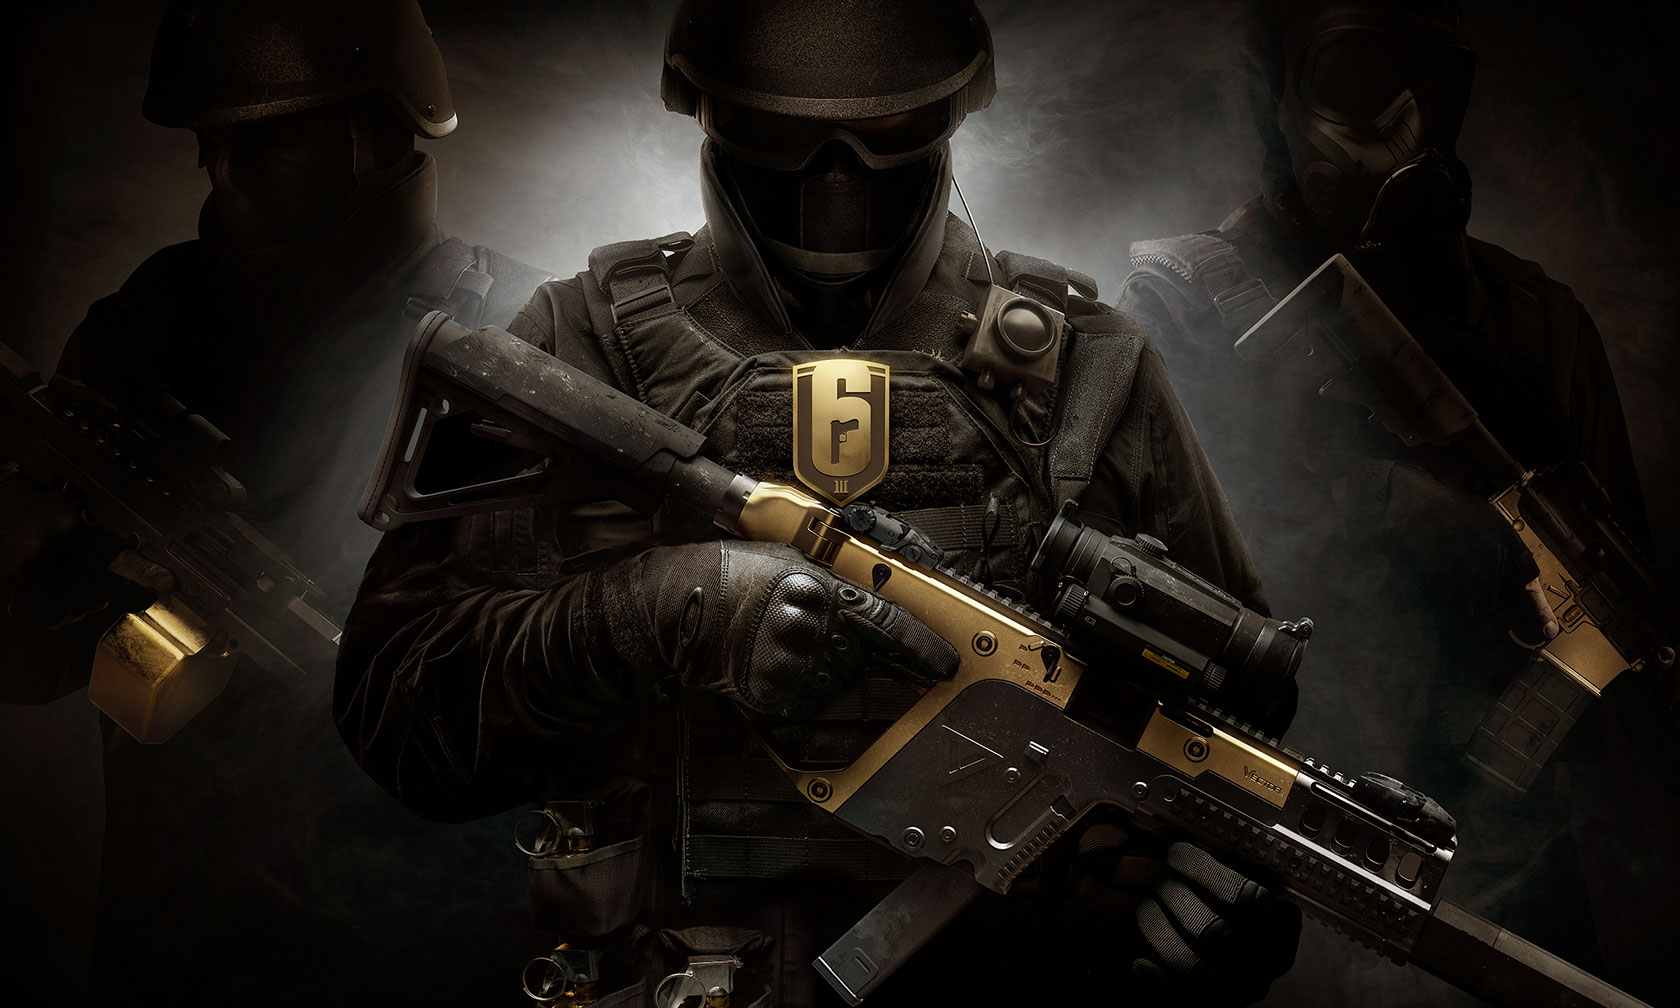 IMAGE(https://ubistatic19-a.akamaihd.net/resource/en-us/game/rainbow6/siege-v3/R6_chimera_patches-y3pass.jpg)